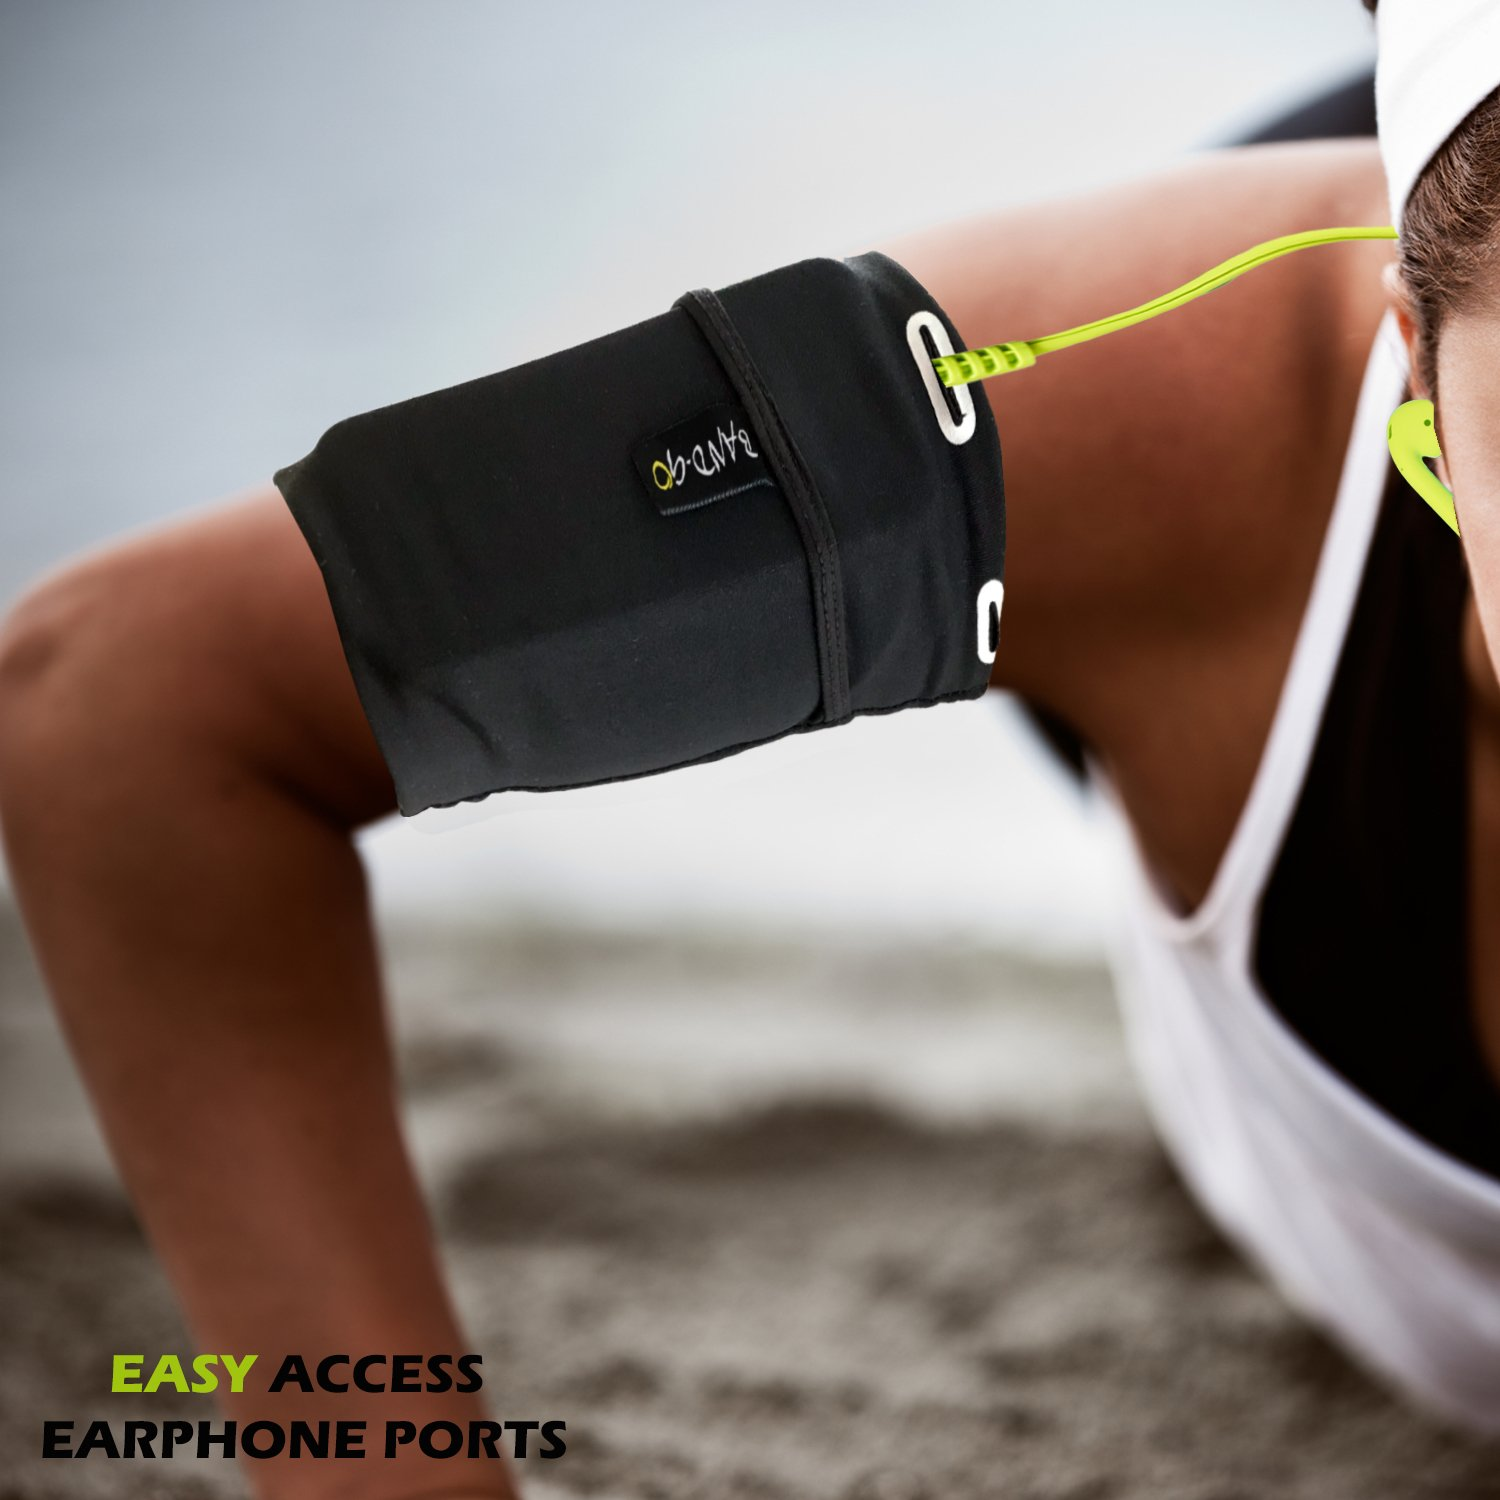 Universal Sports Armband for all Phones. Exercise Arm Holder for Running, Fitness and Gym Workouts (iPhone X/8/7/6/Plus,Samsung Galaxy S9/S8/S7/S6/Edge/Plus & LG,Huawei,Google,Sony & More). Medium by Revere Sport (Image #3)